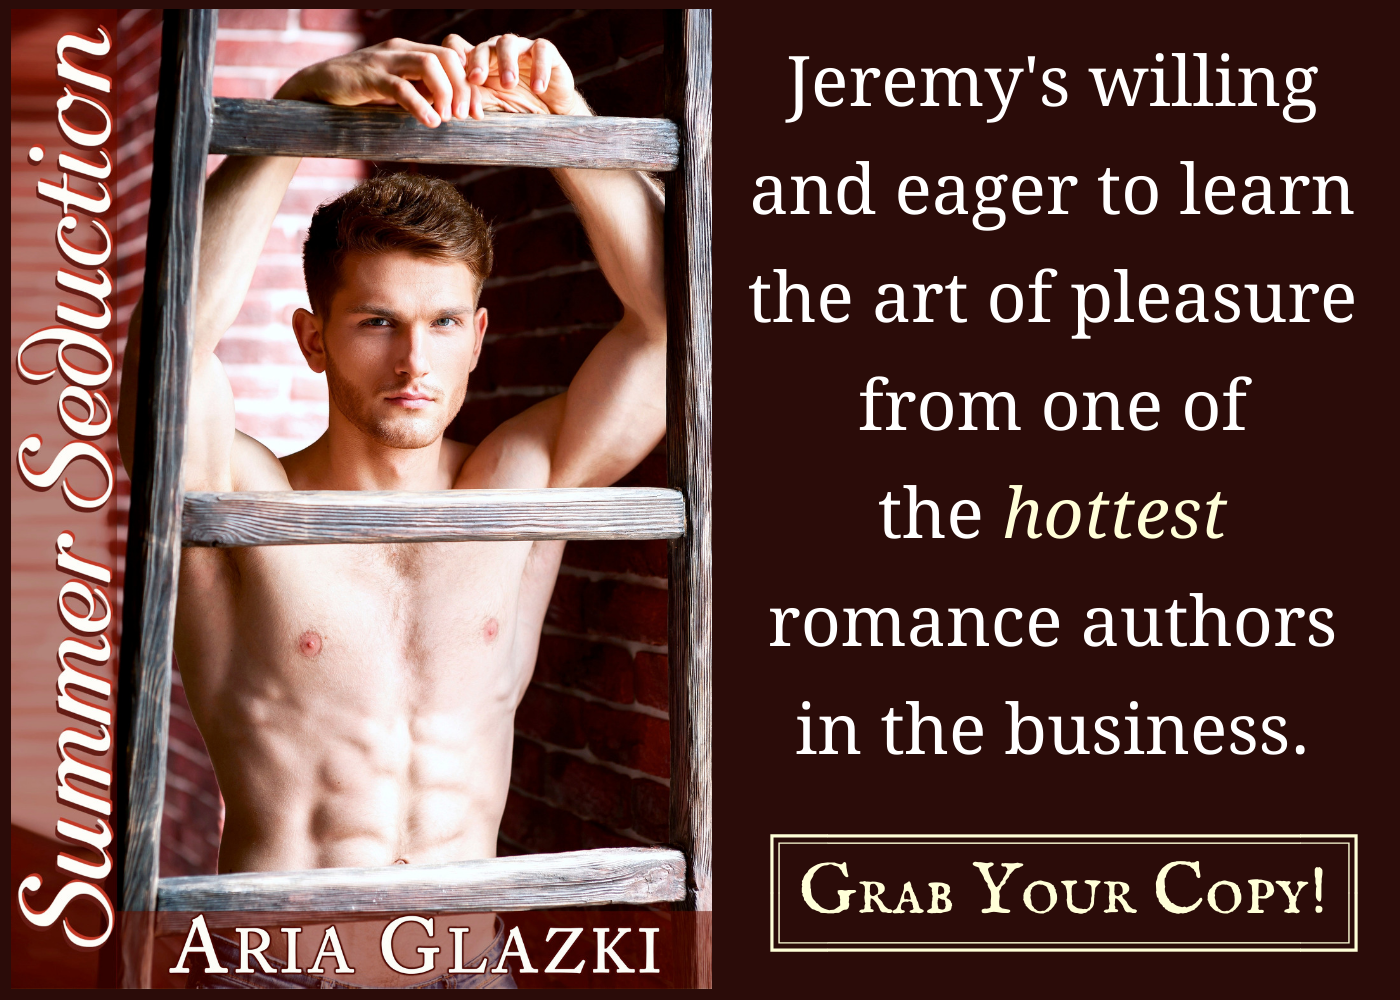 Shirtless white man braced on red brick wall. Text: He's willing and eager to learn the art of pleasure from one of the hottest romance authors in the business. Grab Your Copy!